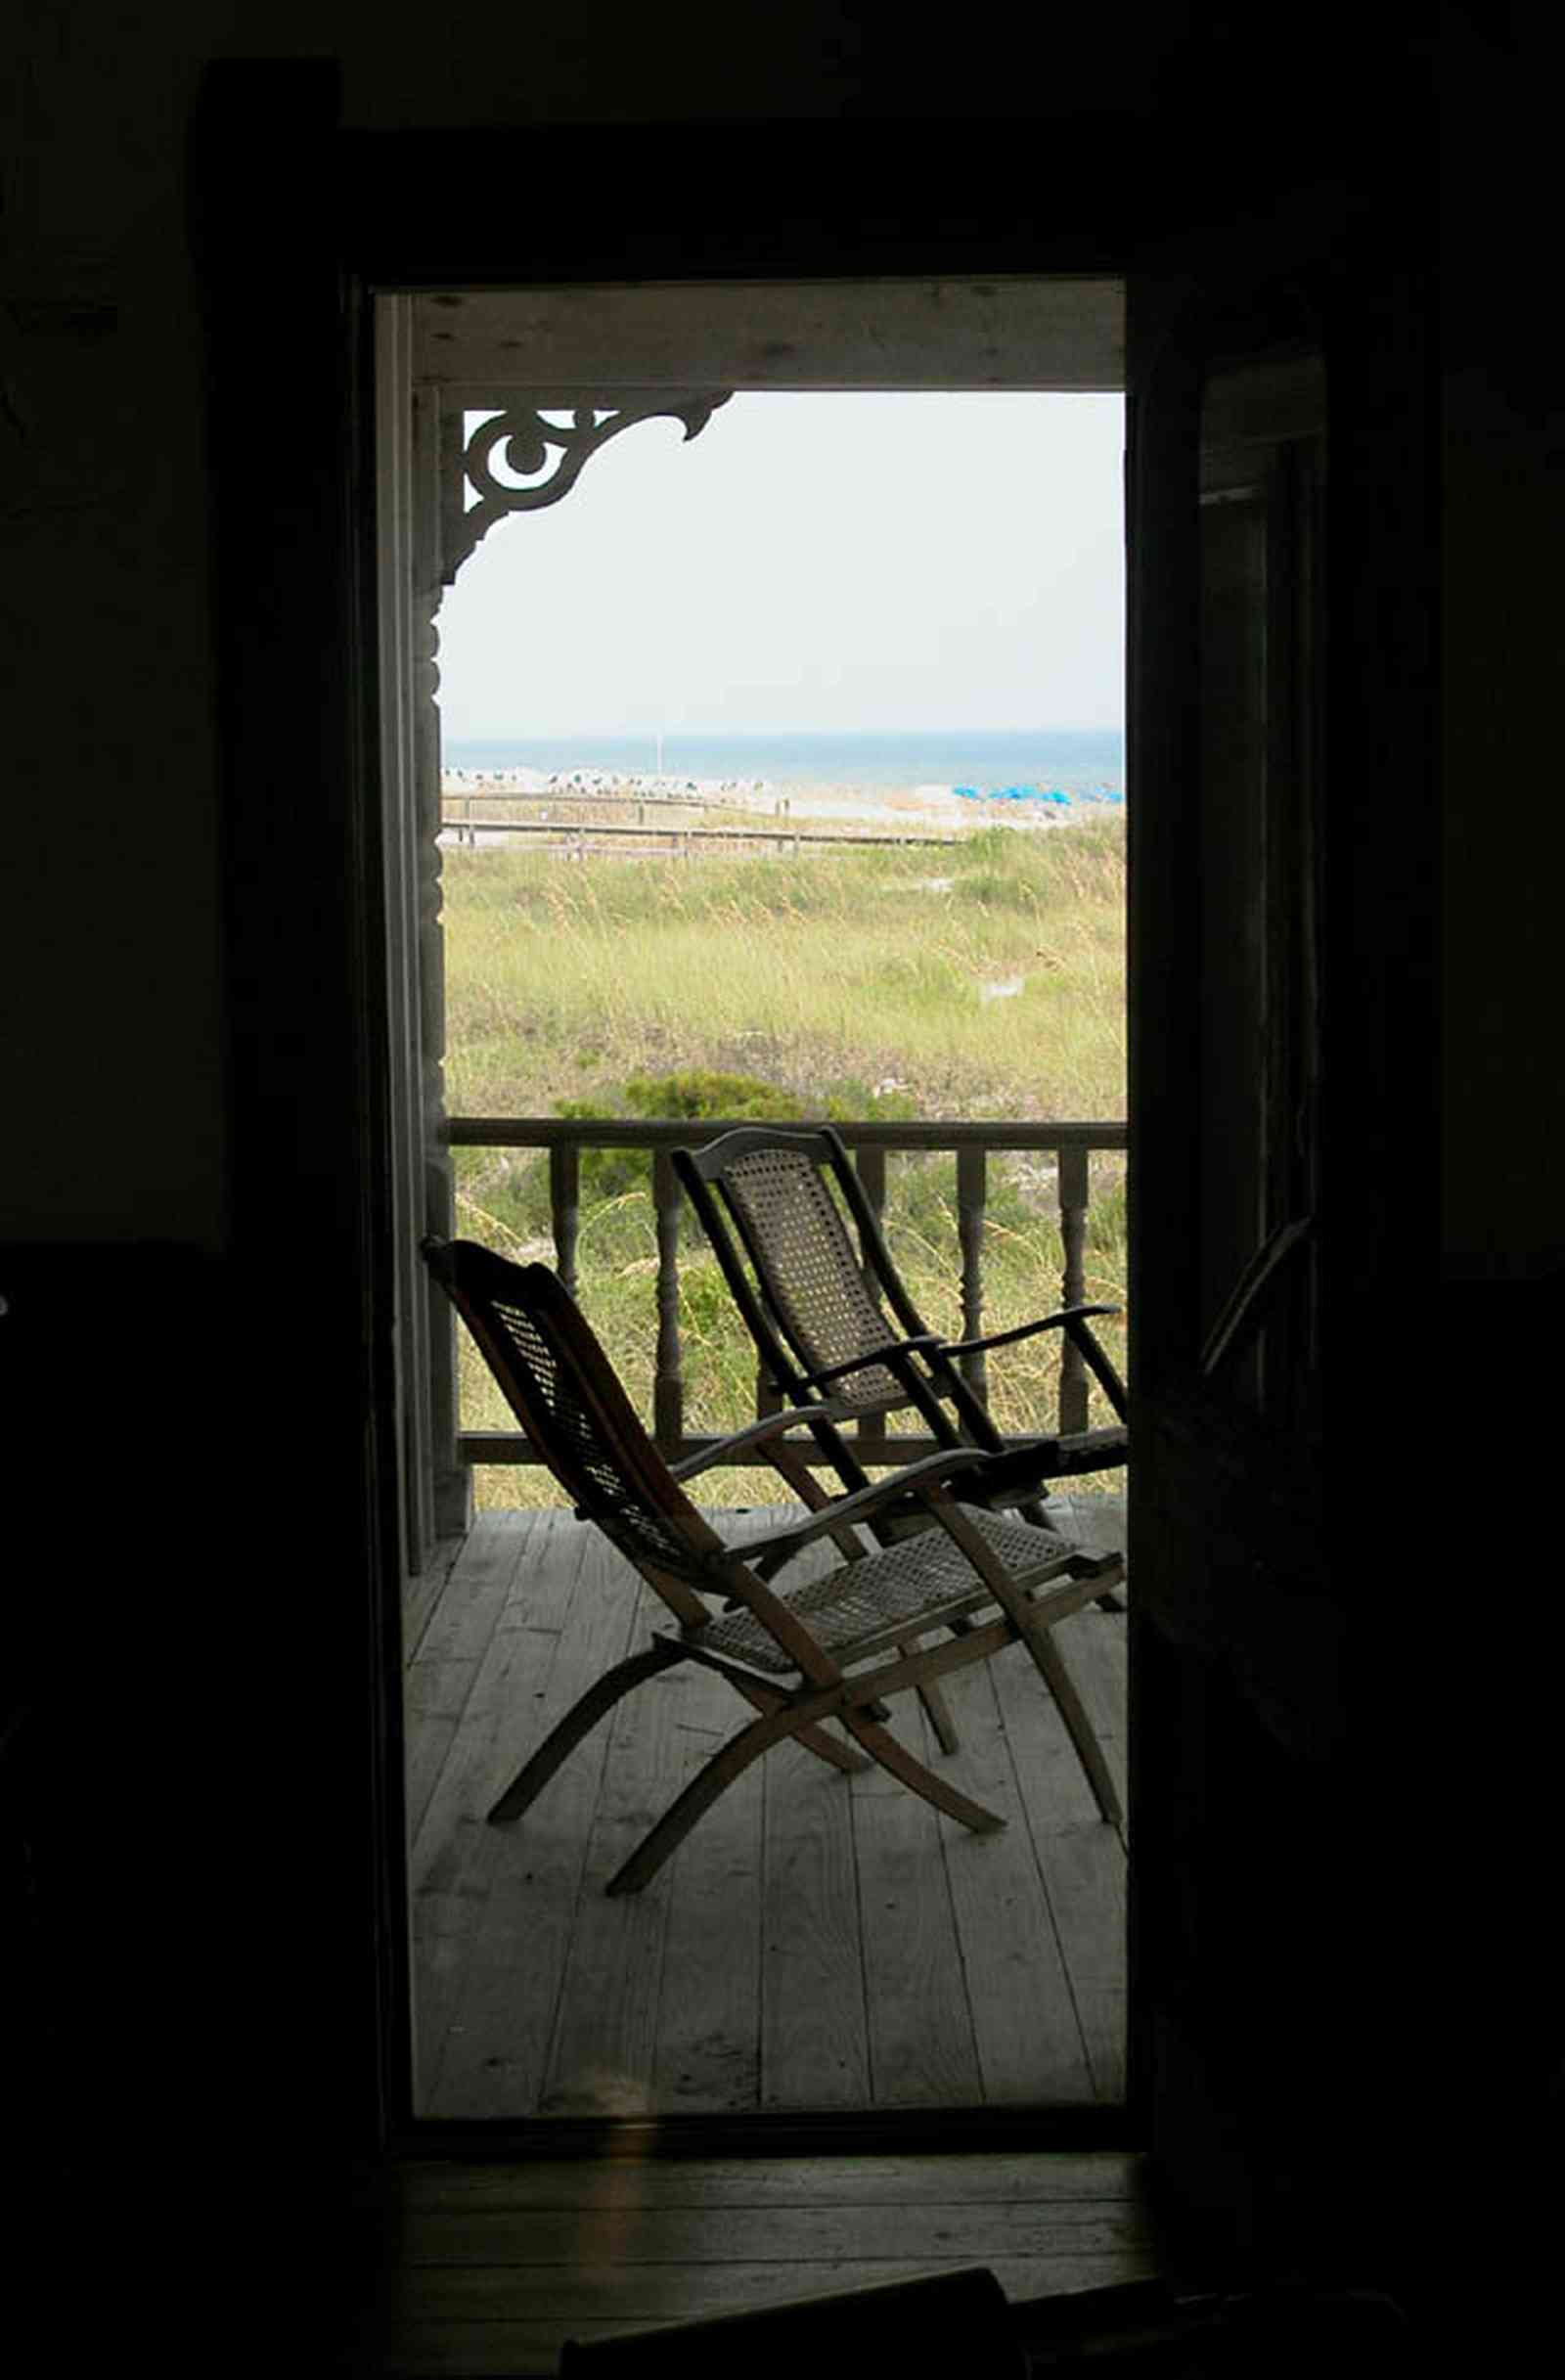 Perdido-Key:-Gothic-House_08f.jpg:  porch, screen porch, summer house, gazebo, cedar shake roof, walkway, pier, deck, gulf of mexico, emerald water, dunes, sea oats, beach, deck chairs, doorway